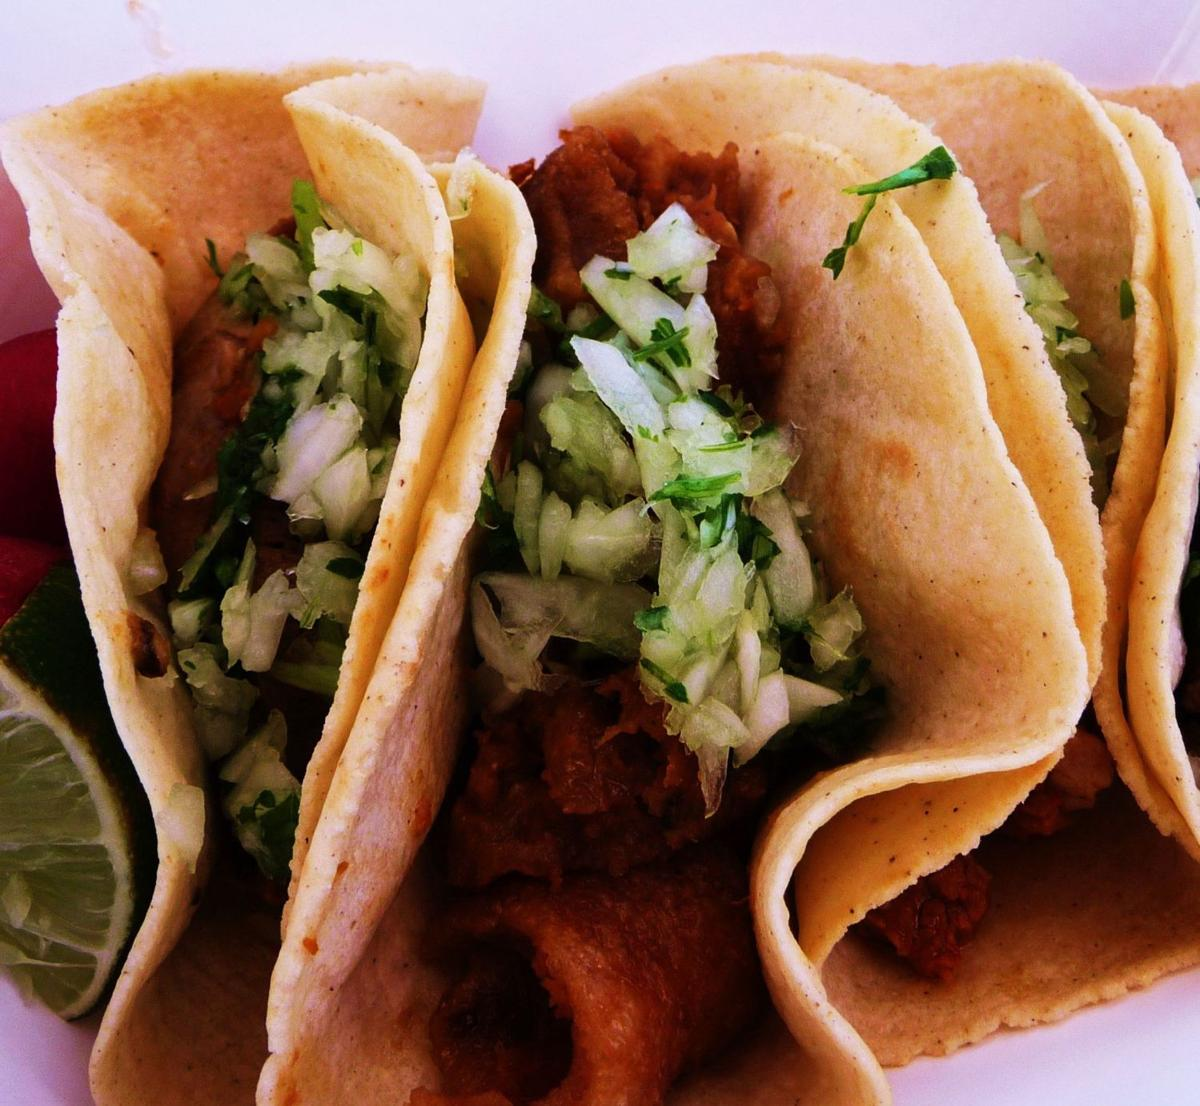 Taco truck offers some sure-f ire hits